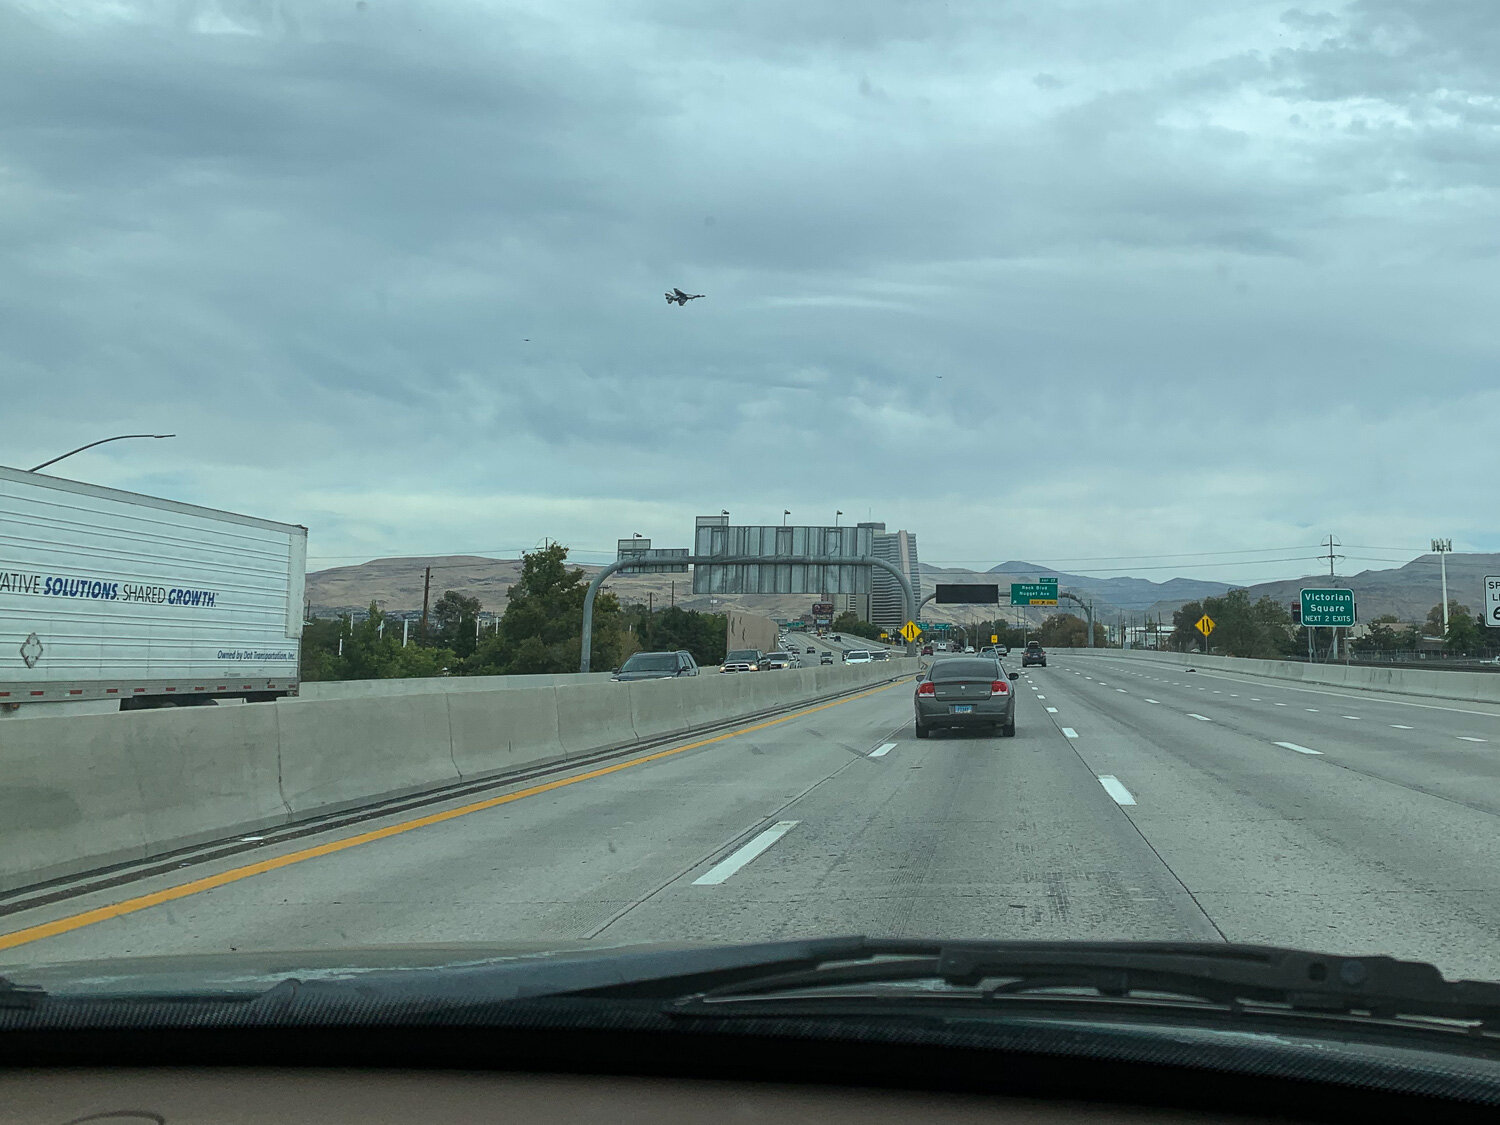 Driving through Reno with Thunderbirds flying over.